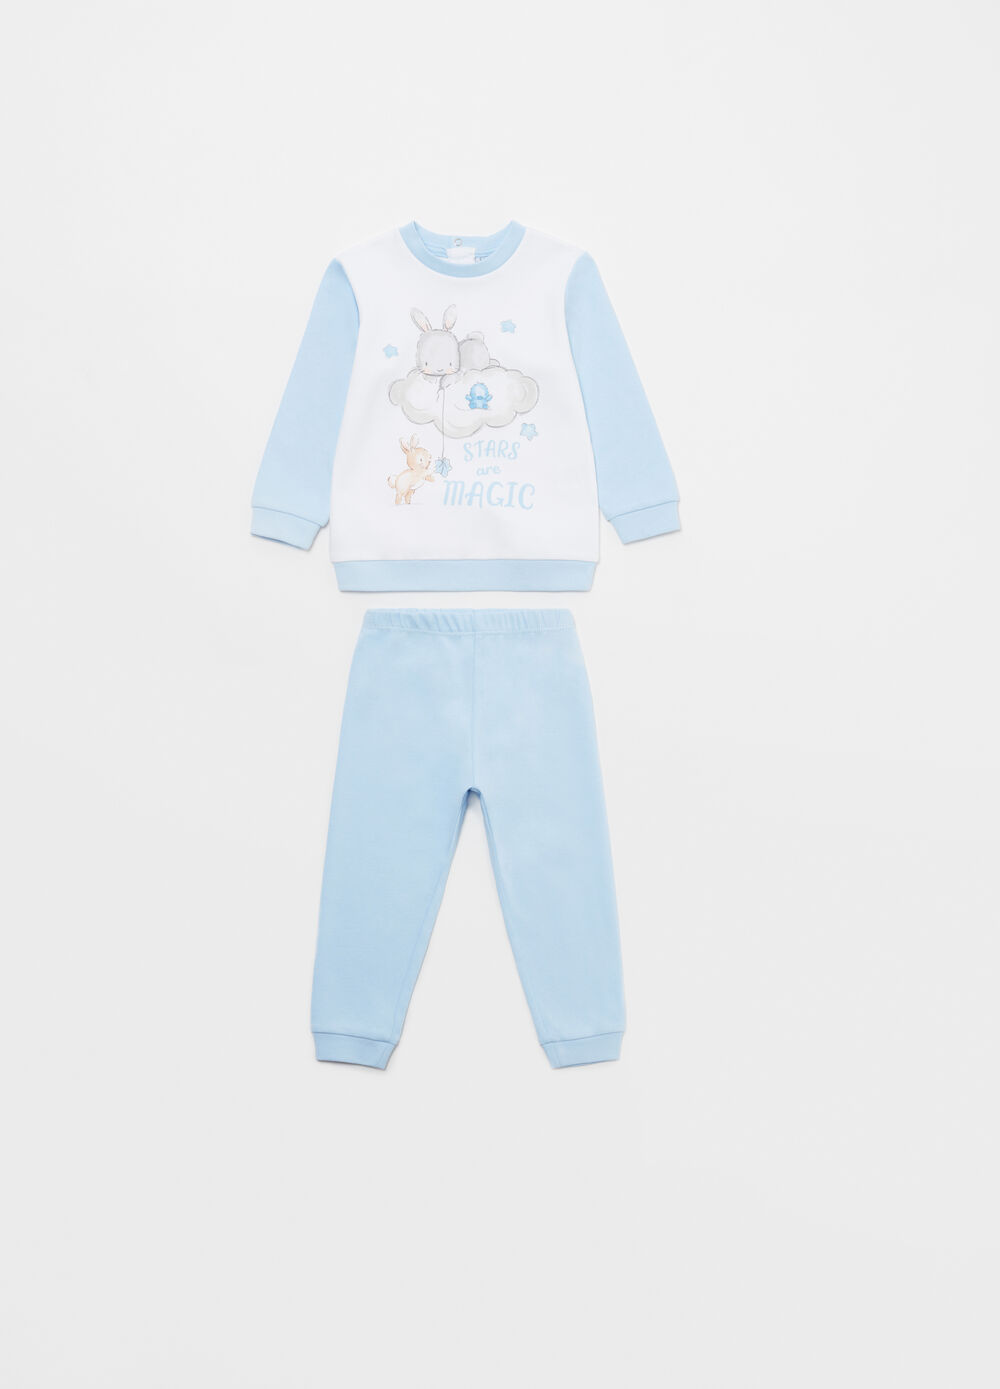 100% cotton pyjamas with rabbits print